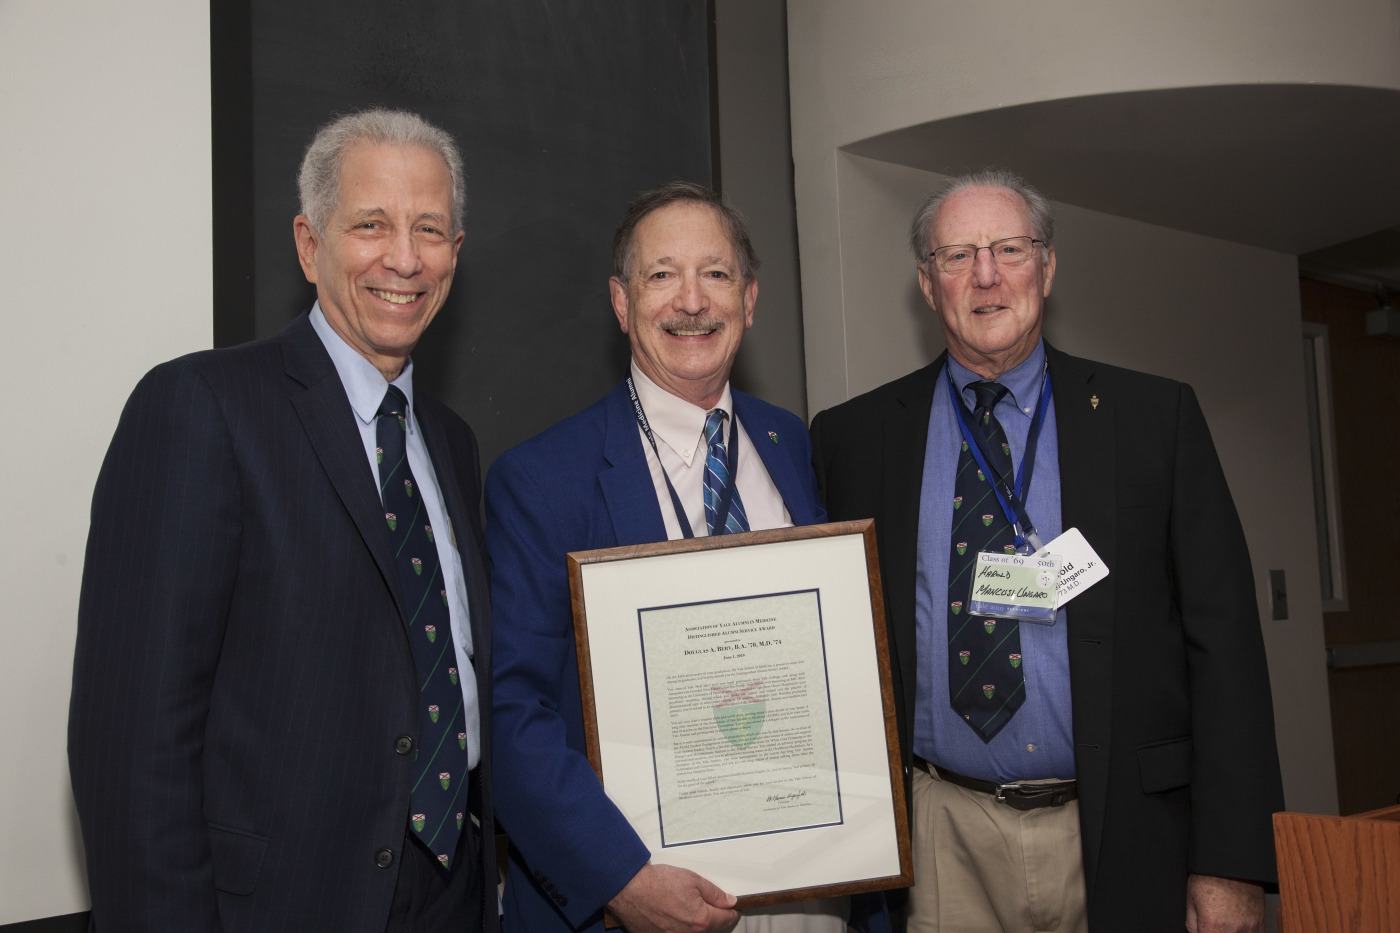 Douglas Berv, B.A. '70, M.D. '74, received the Distinguished Alumni Service Award from Dean Robert Alpern and AYAM President Harold Mancusi-Ungaro, M.D. '73